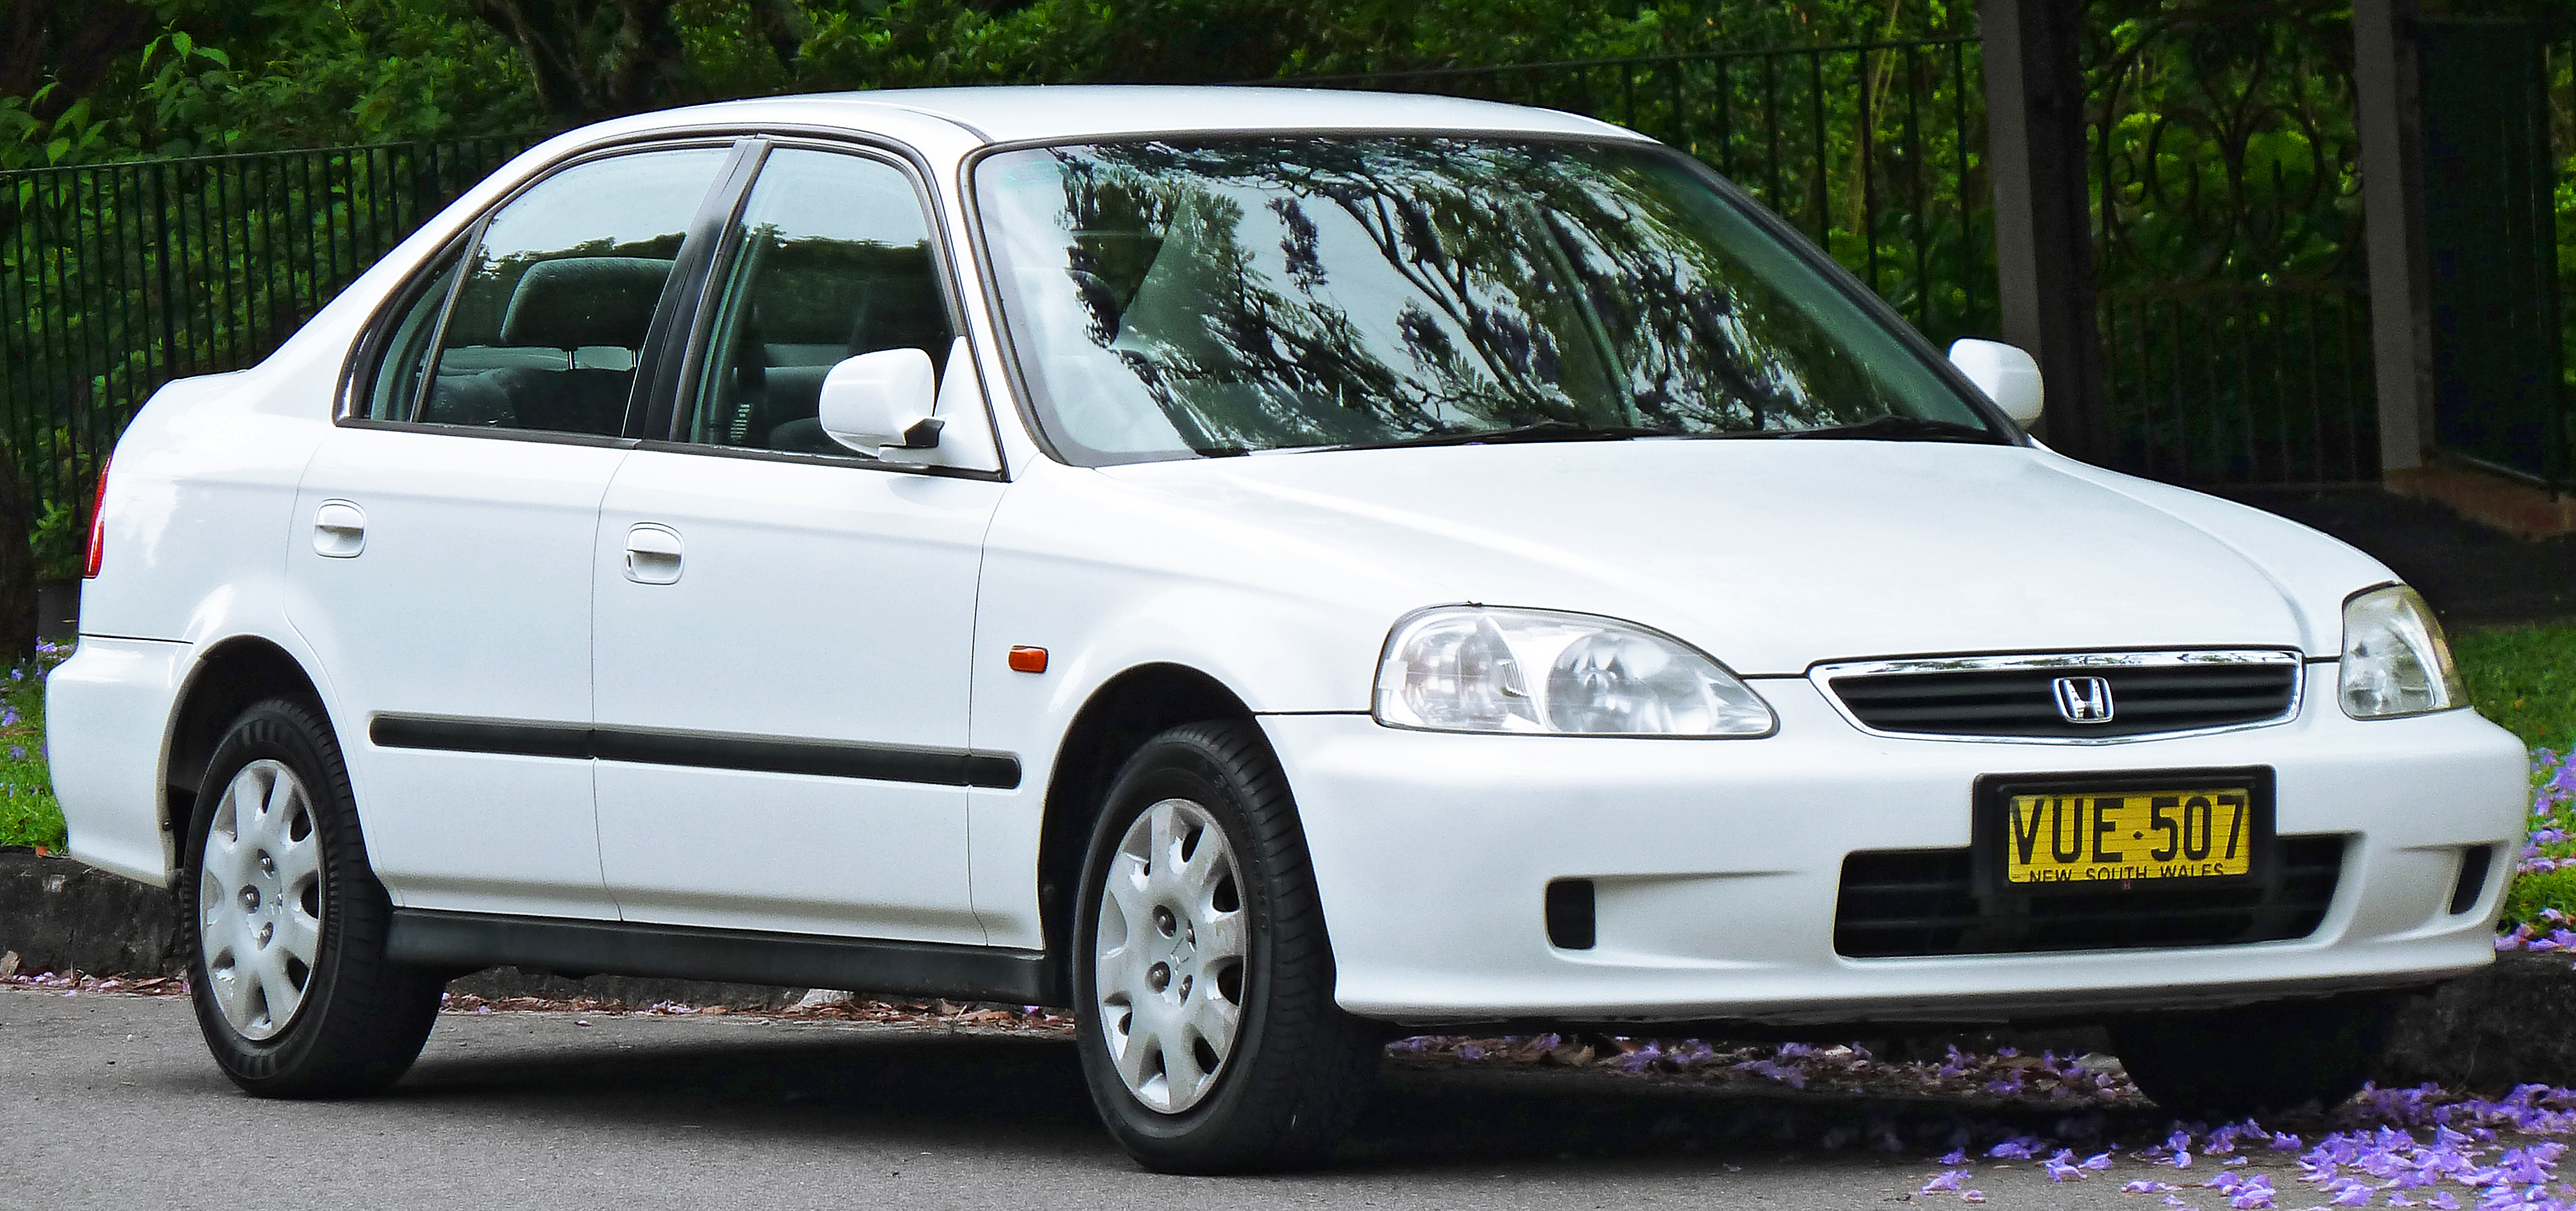 Honda Orthia I 1996 - 1999 Station wagon 5 door #1